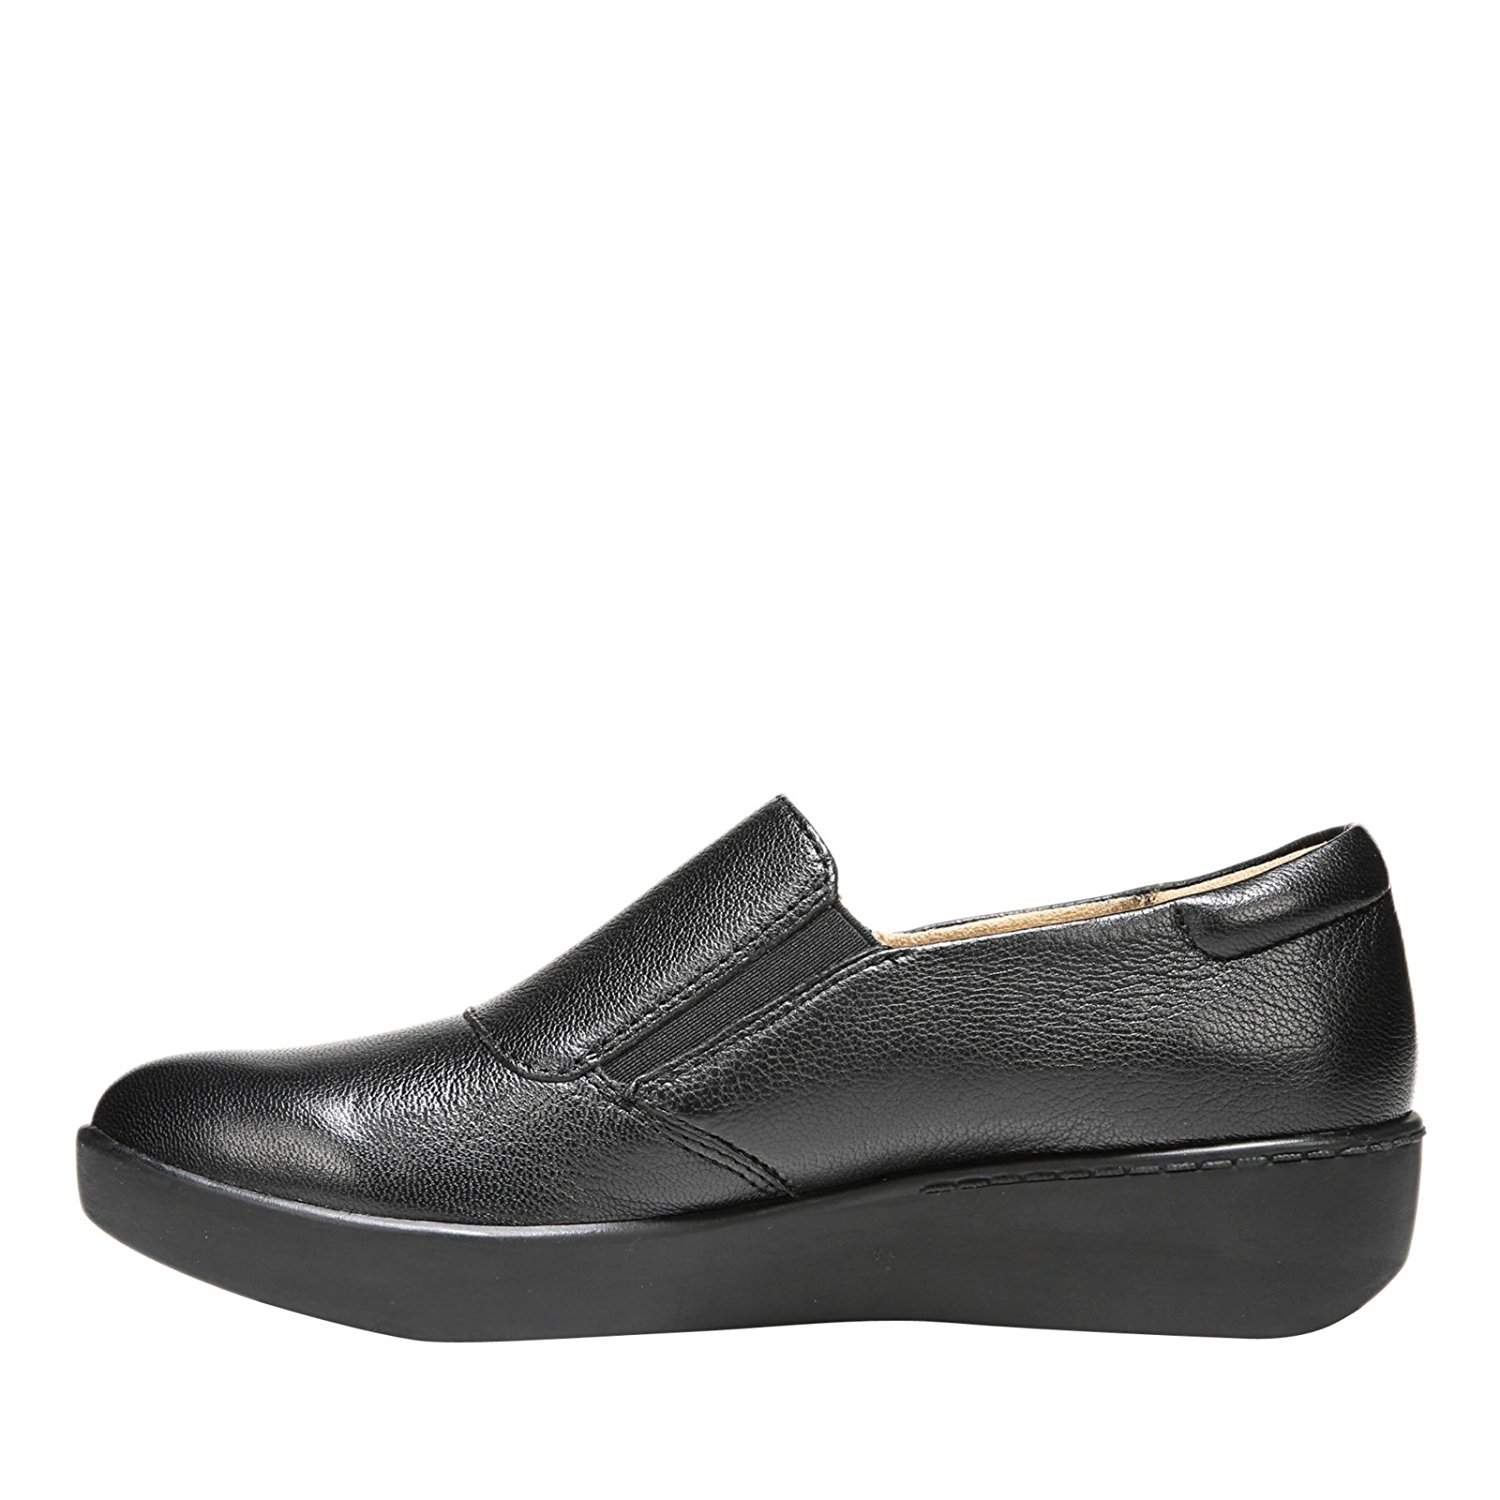 Naturalizer Womens leighla Leather Almond Toe Loafers by Naturalizer